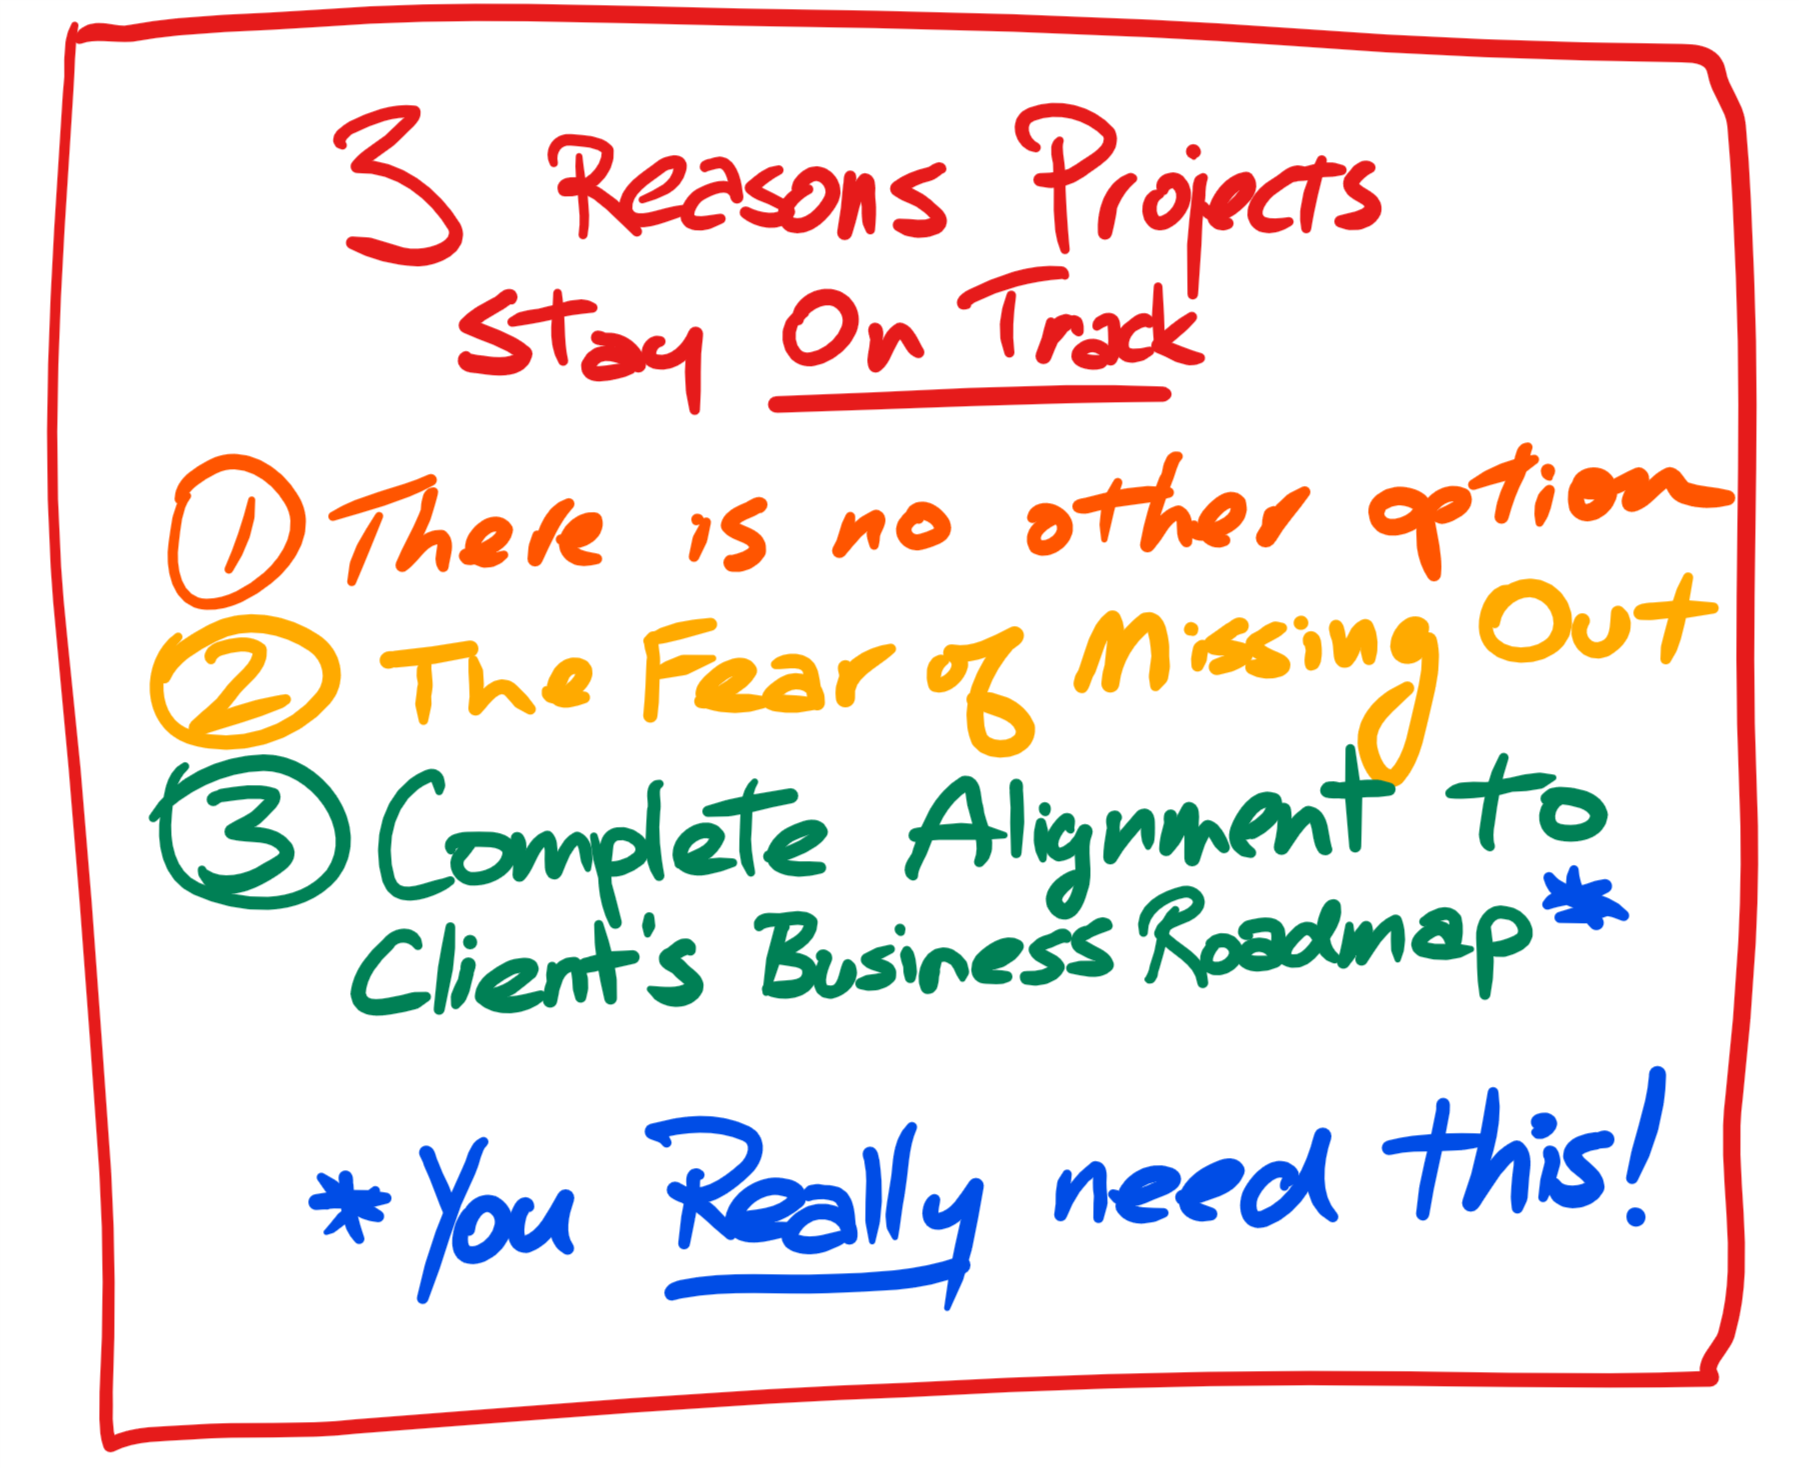 Projects On Track - 2.png